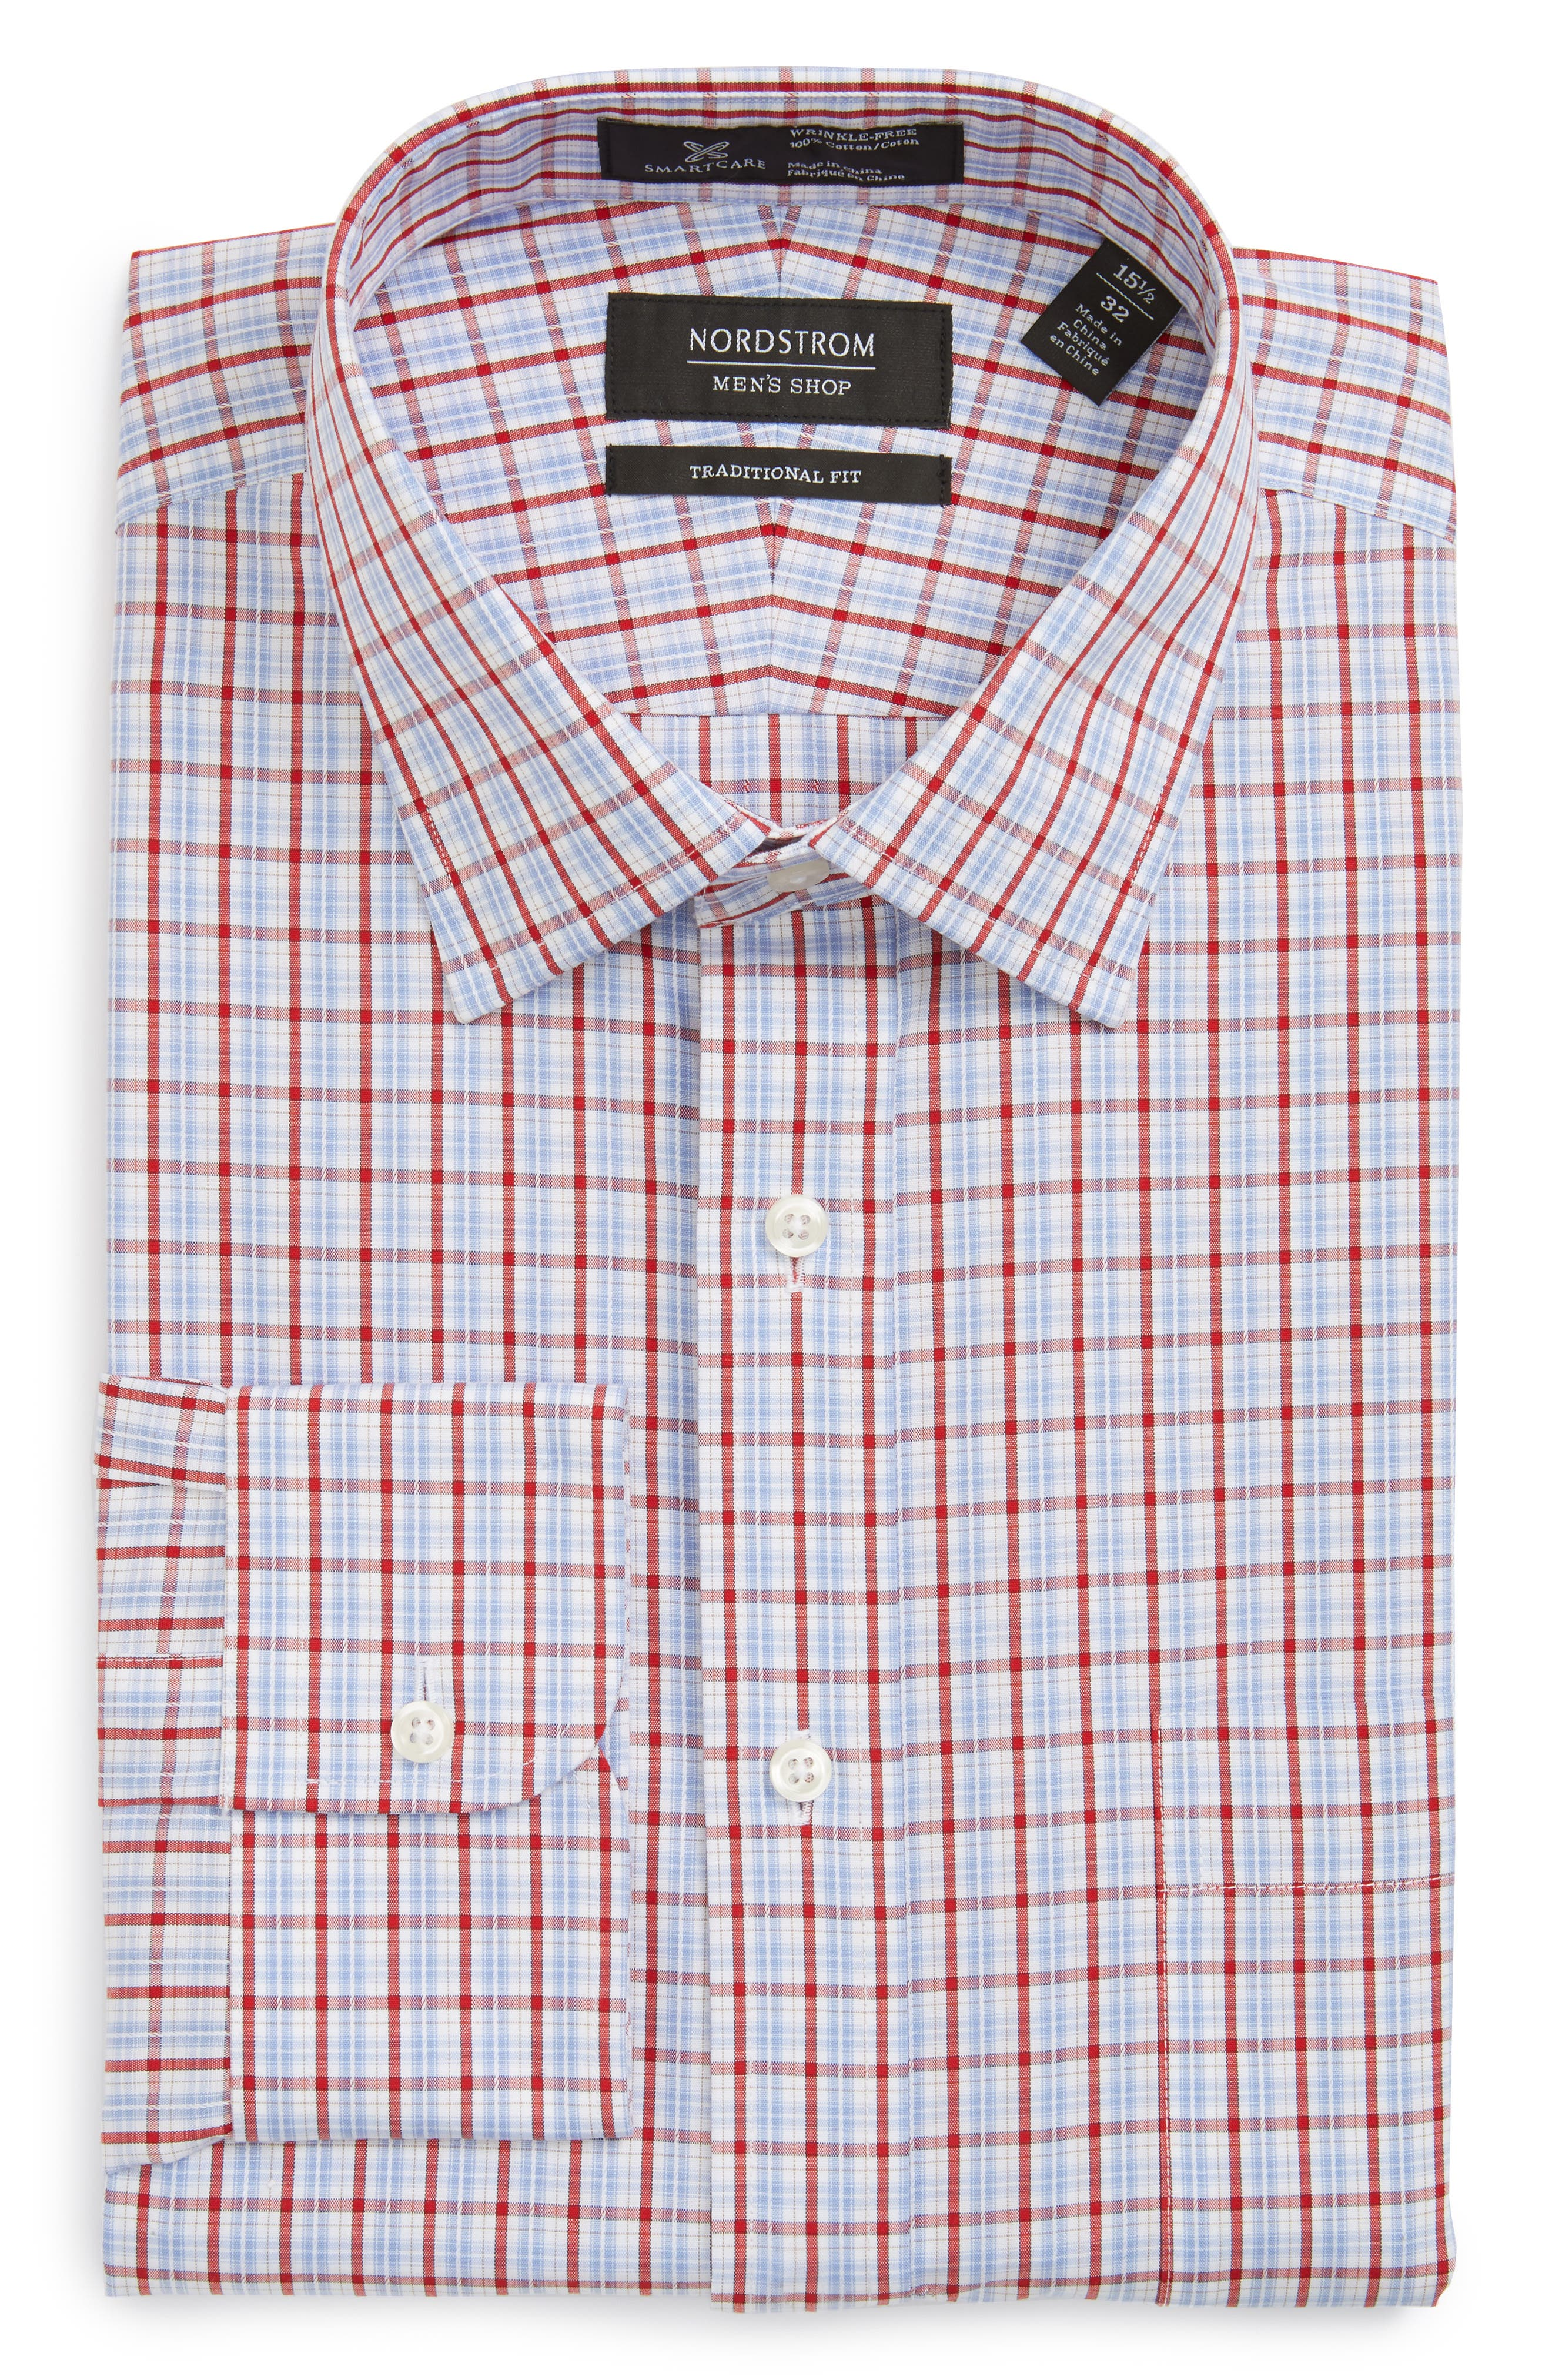 Nordstrom Men's Shop Smartcare™ Traditional Fit Plaid Dress Shirt